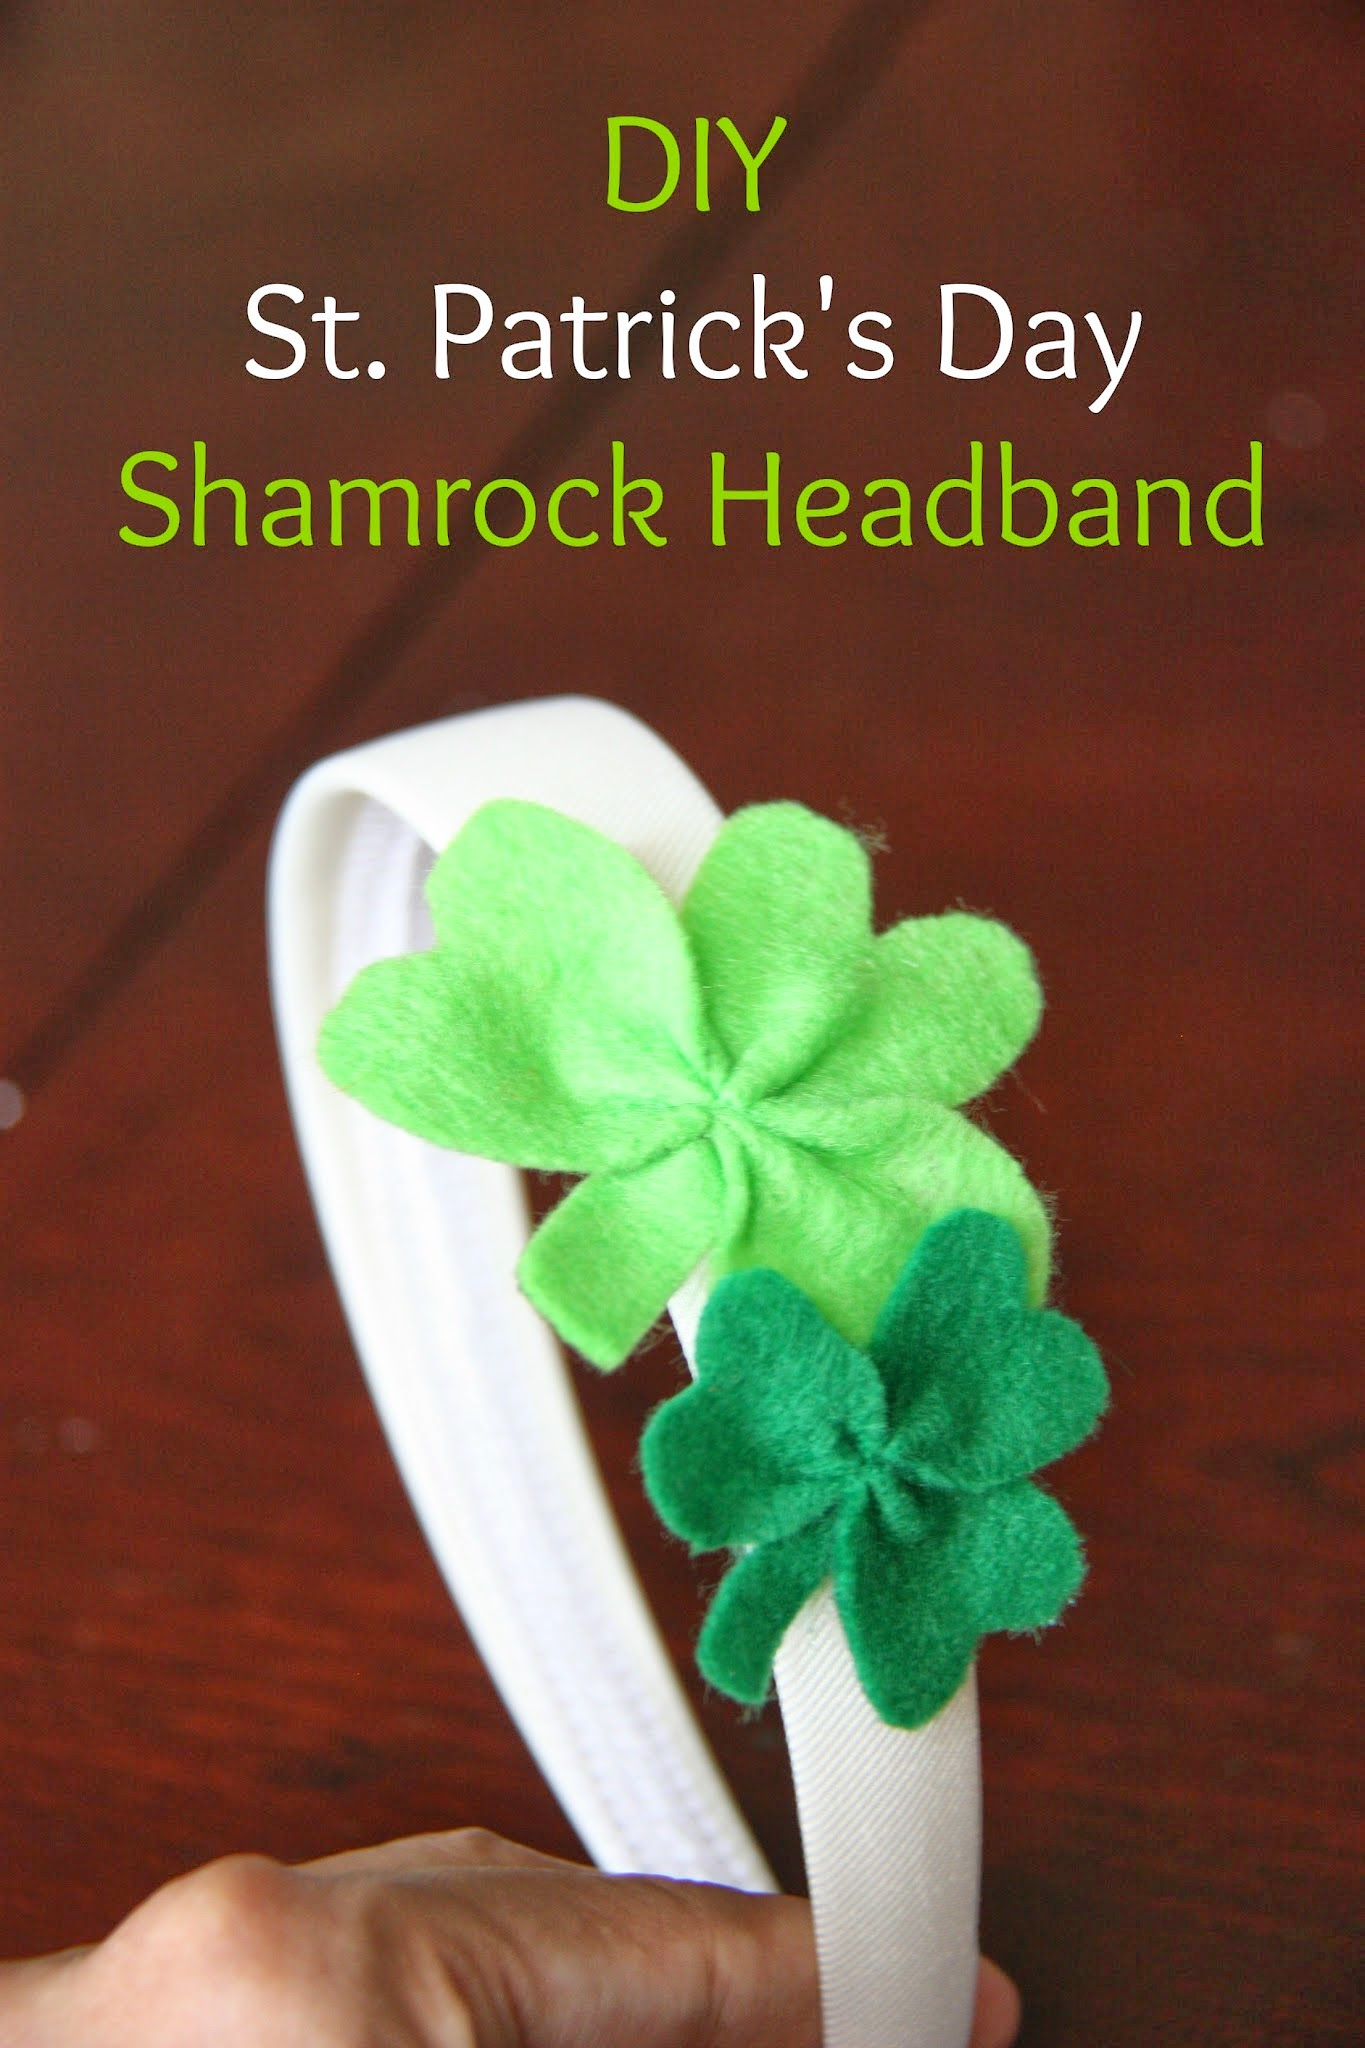 DIY St. Patrick's Day Shamrock Headband